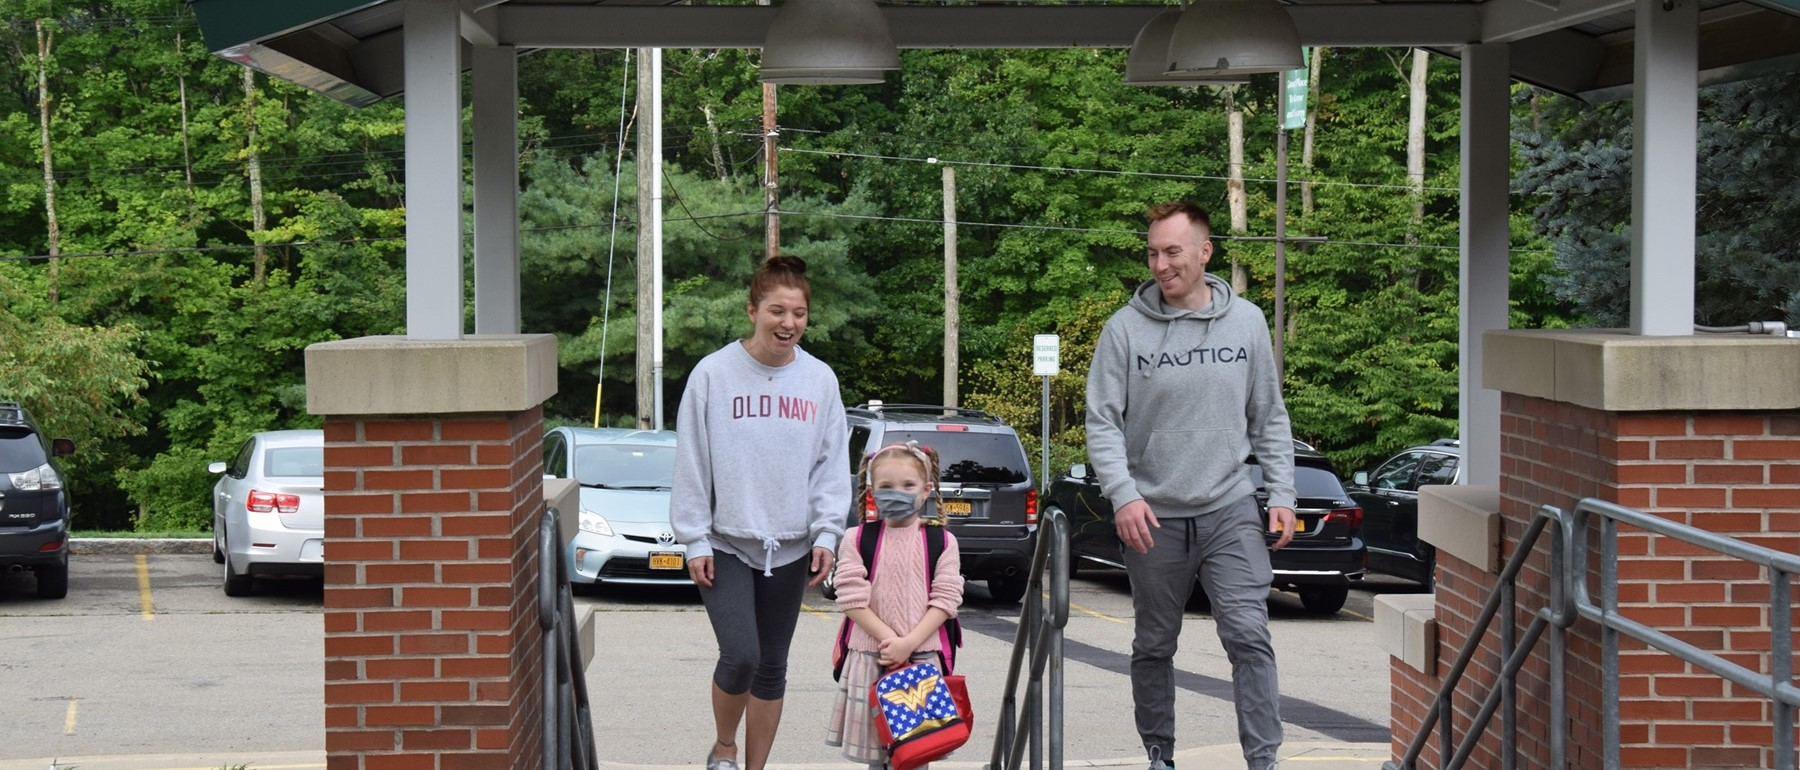 A mother and father walk their daughter up the Vestal Hills Elementary steps on the first day of school, September 9, 2021.